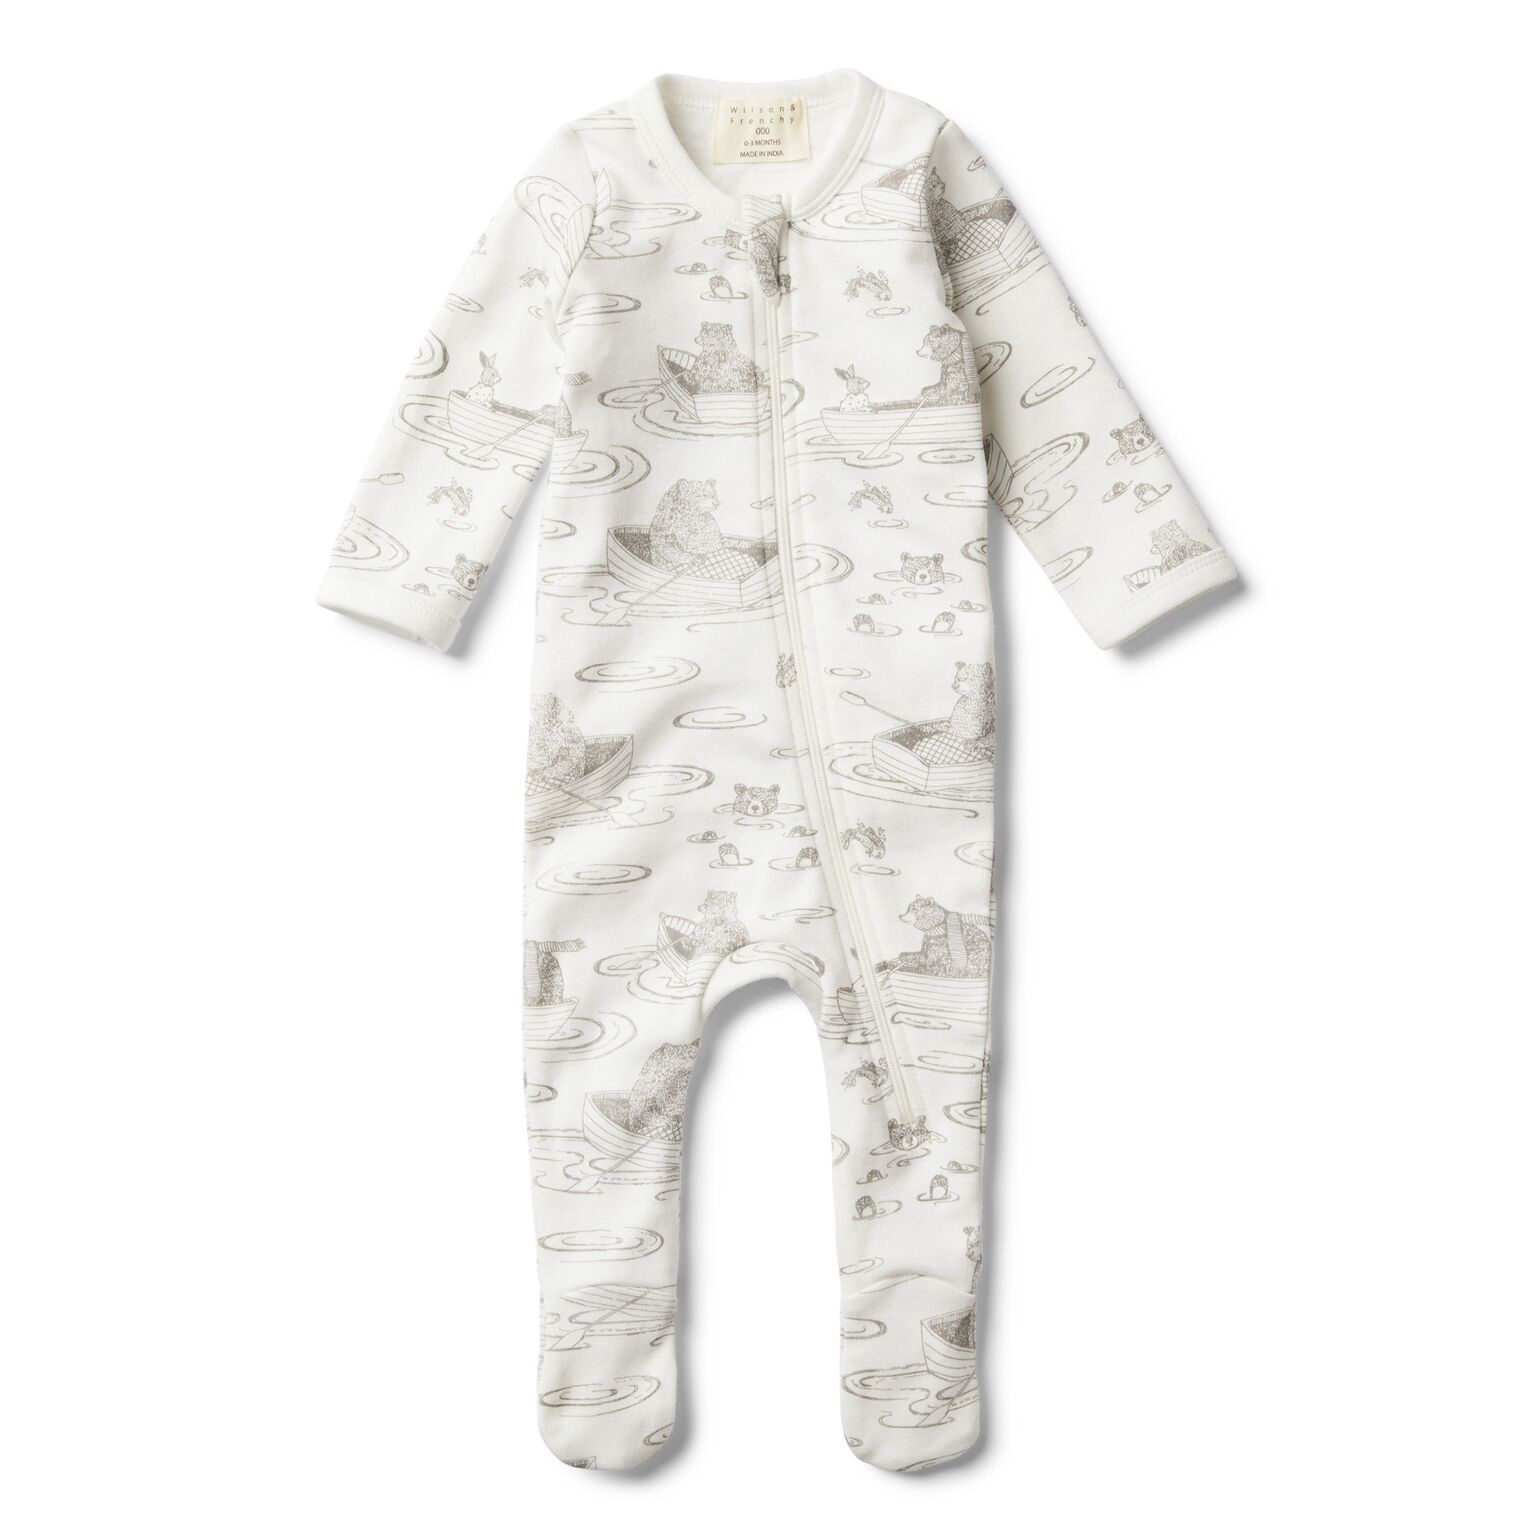 WF Little row boat zip suit with feet